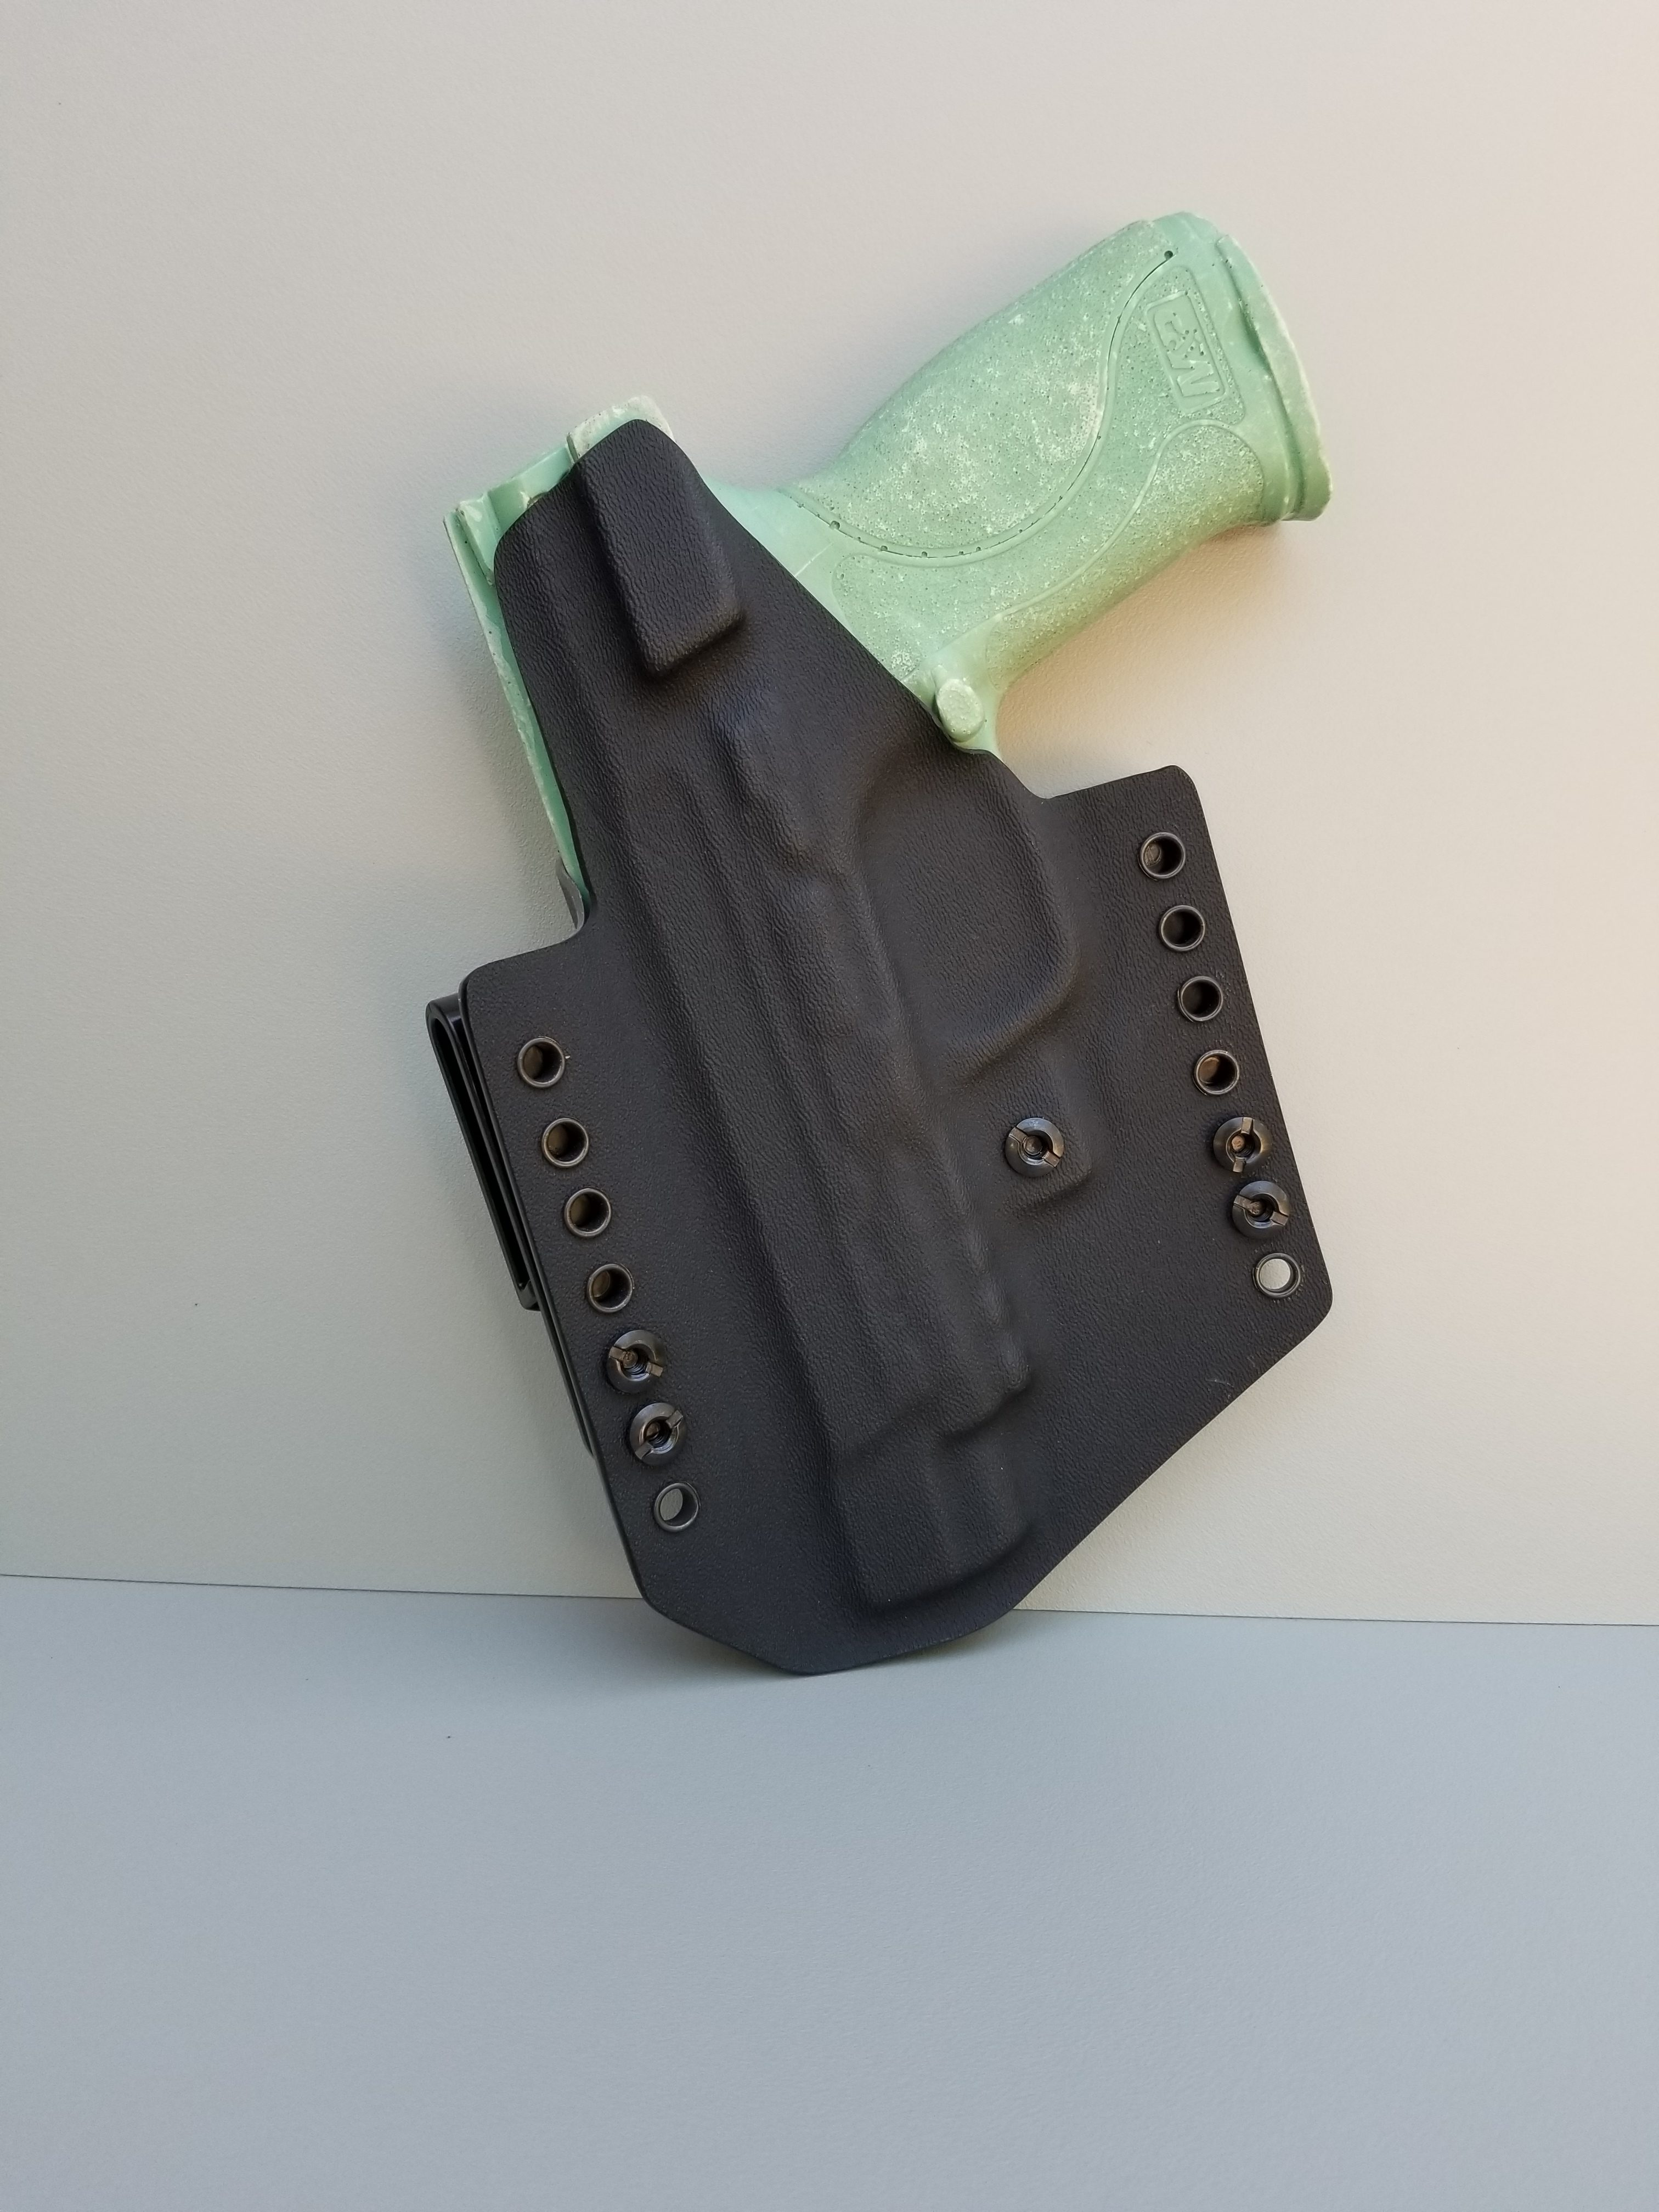 Black Nestor Holster & Double Mag Pouch Bundle - OWB or IWB